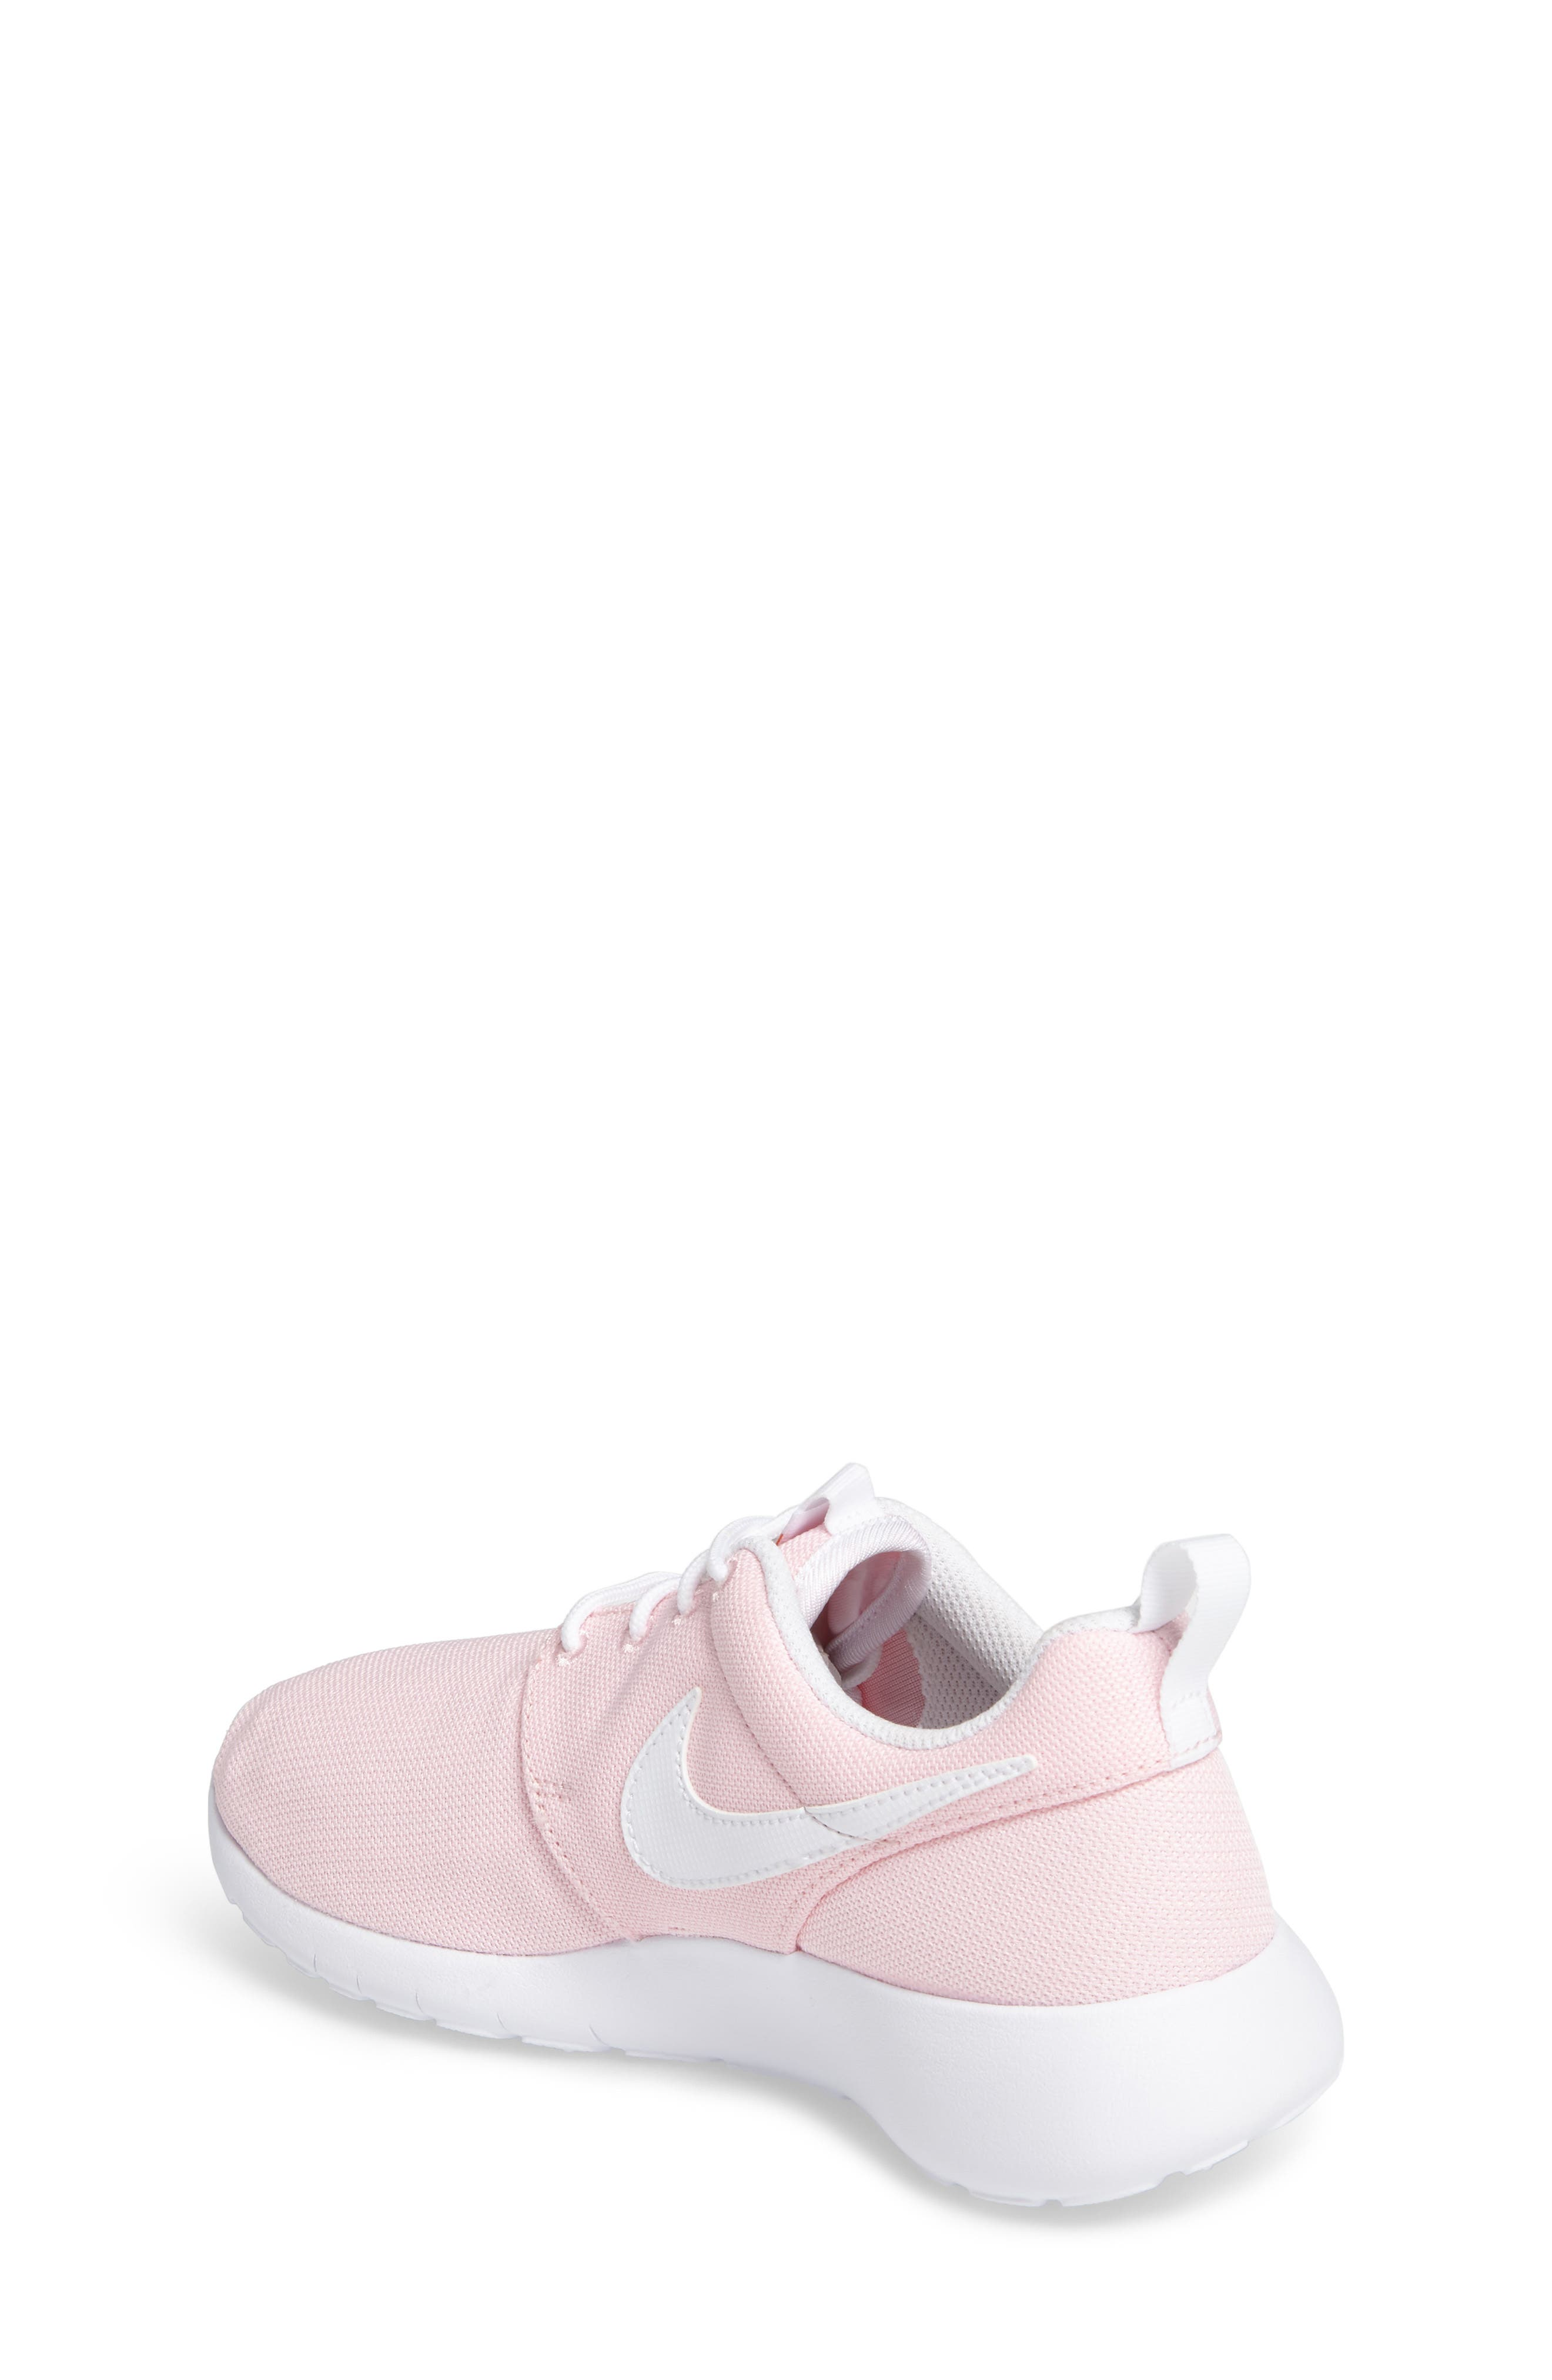 Alternate Image 2  - Nike 'Roshe Run' Athletic Shoe (Little Kid & Big Kid)